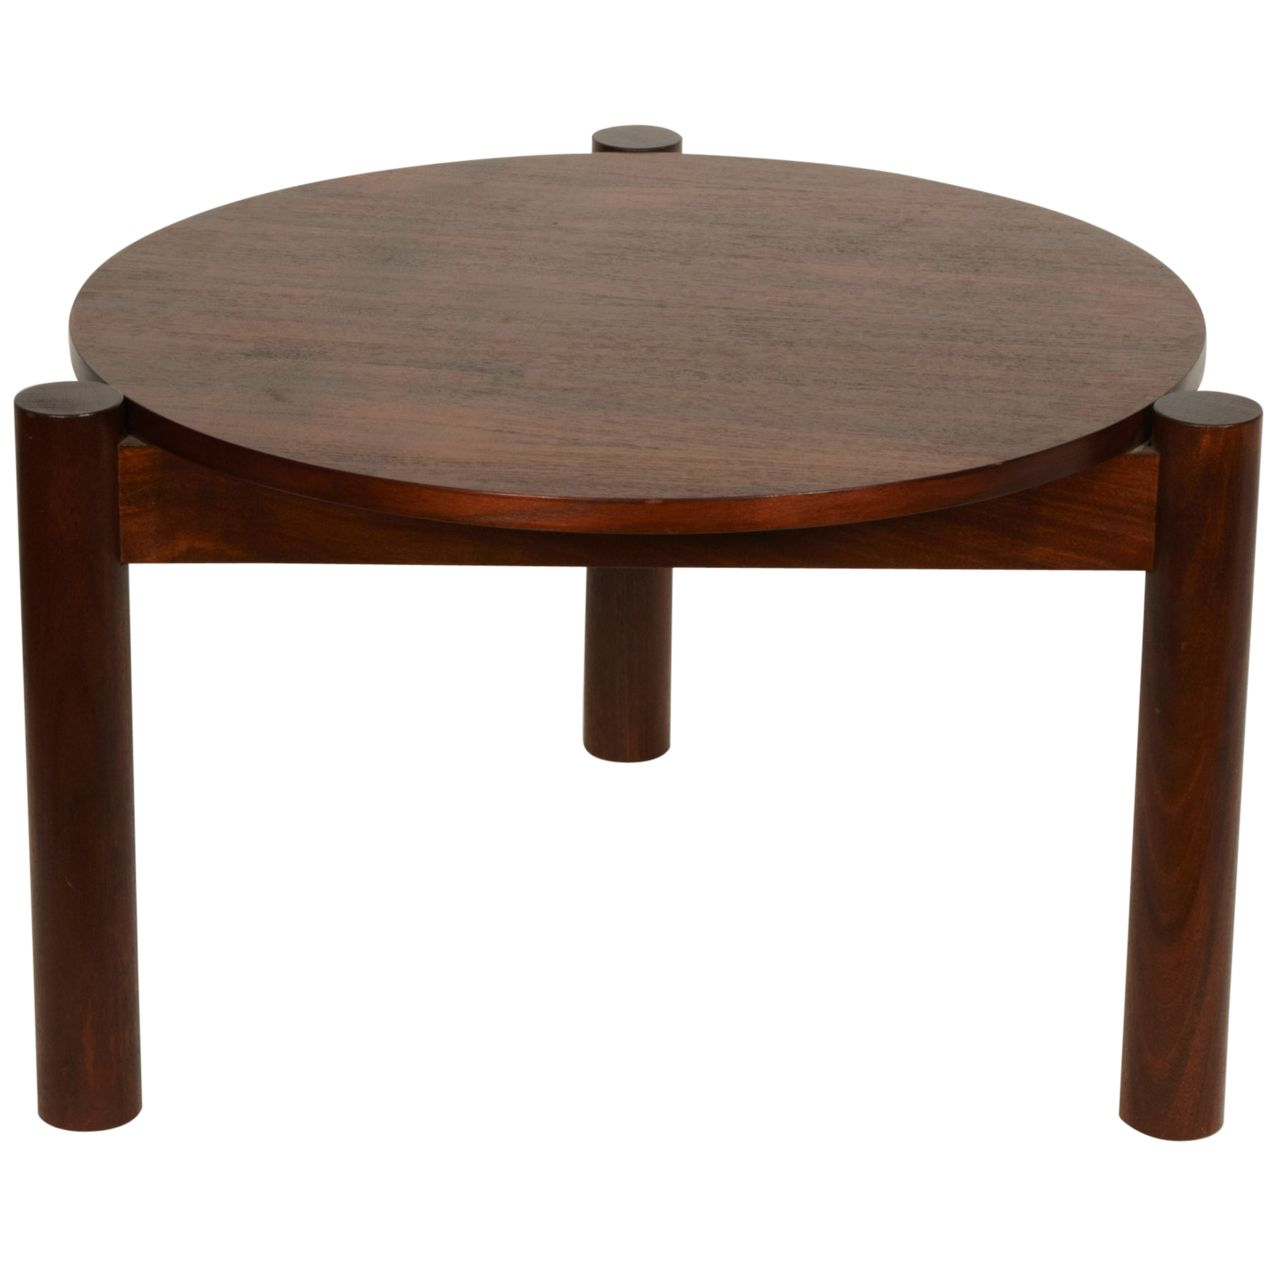 Pierre Jeanneret Coffee Table Ca. 1960